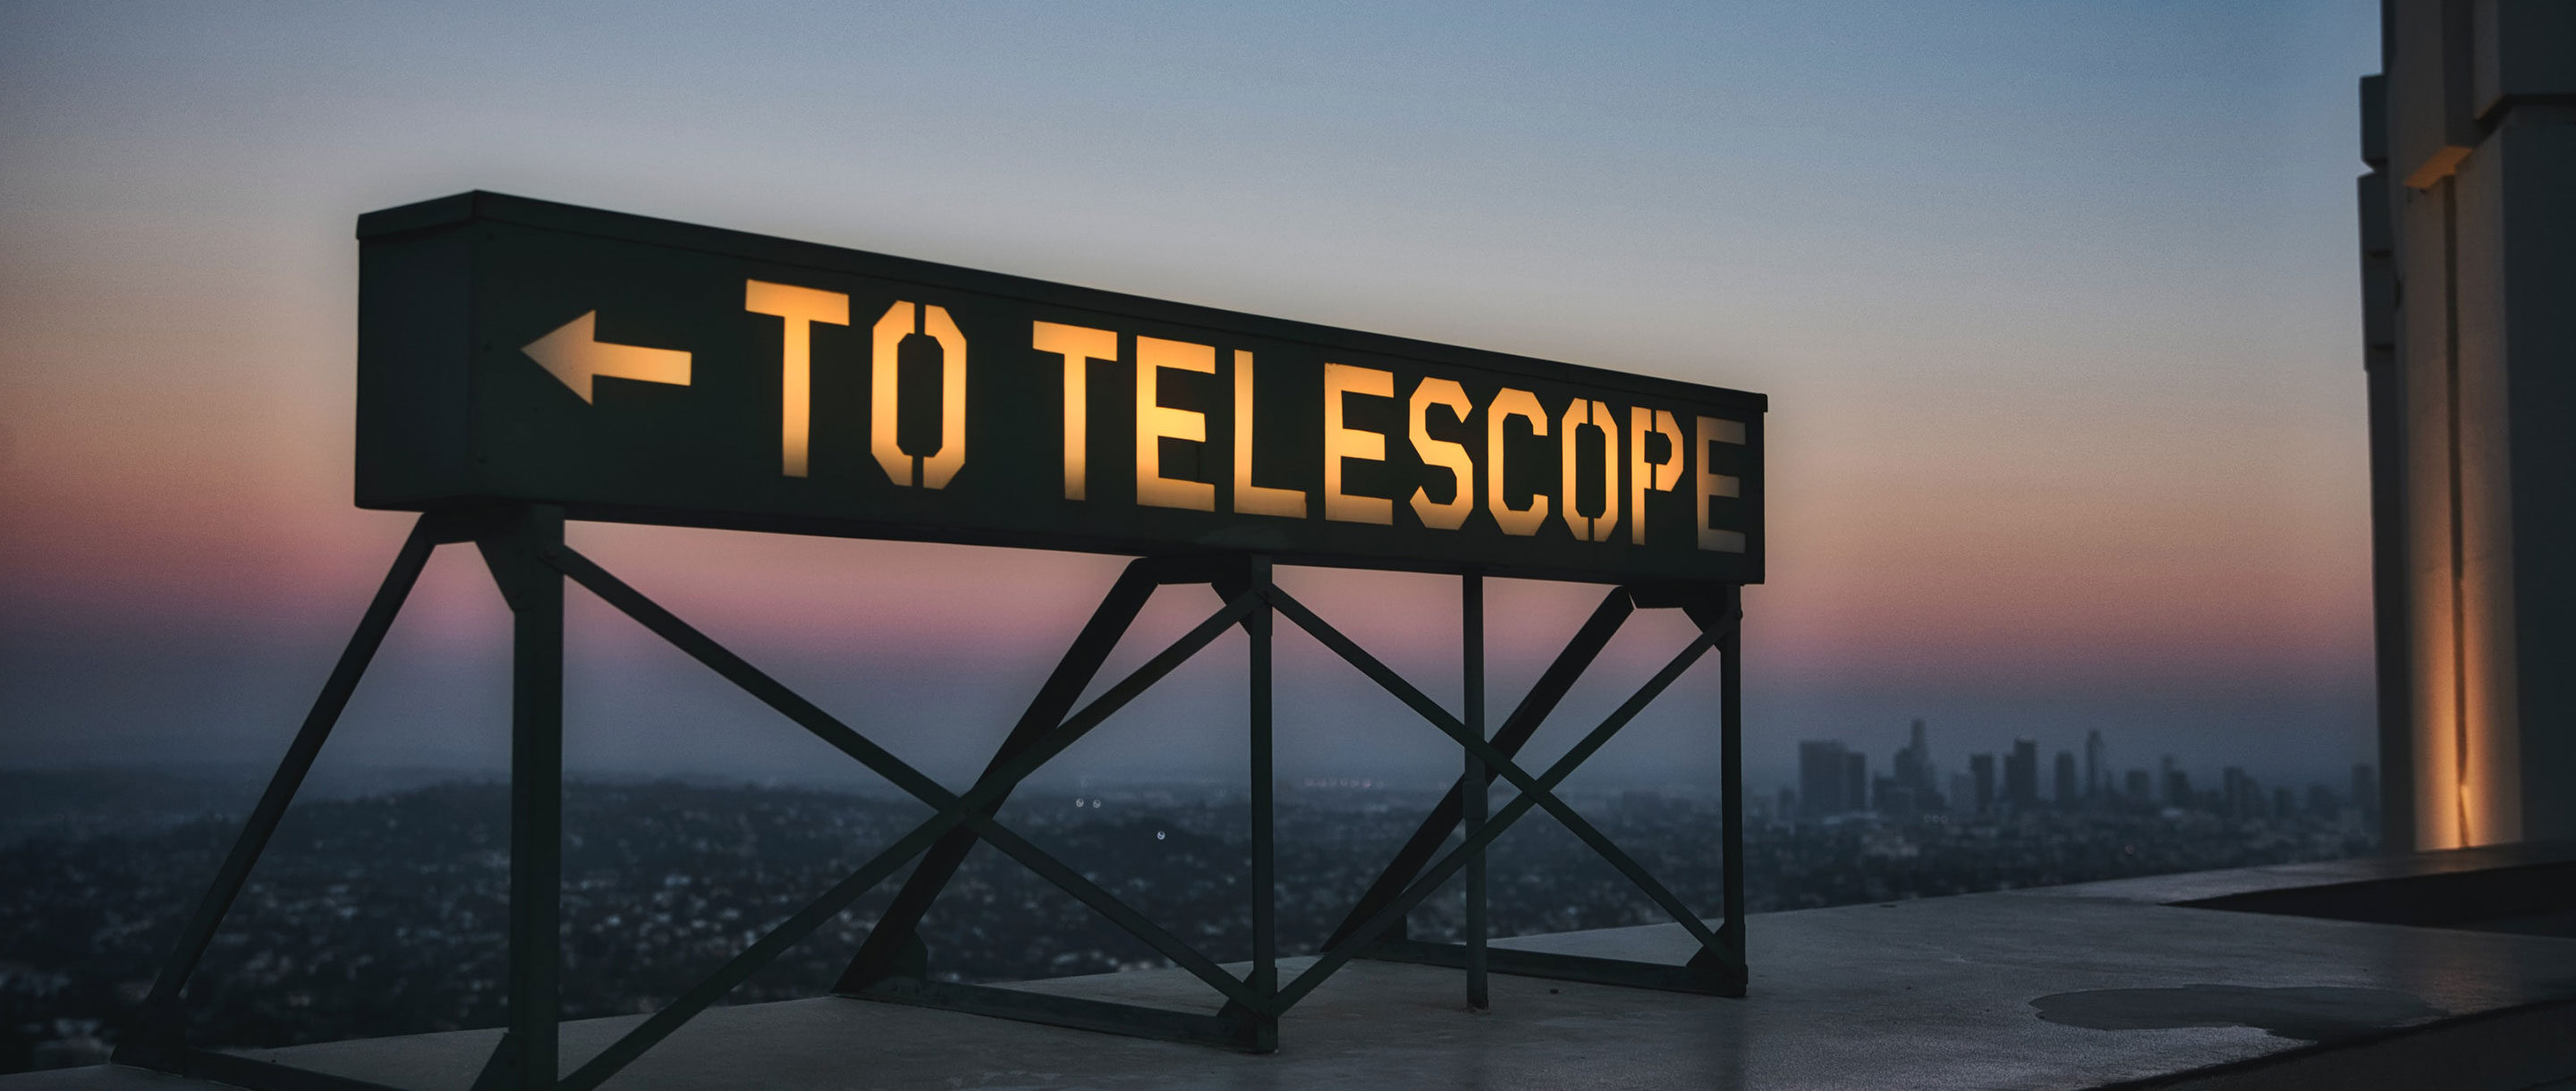 "Photo of a sign reading ""To Telescope"" near Griffith Observatory in Los Angeles."